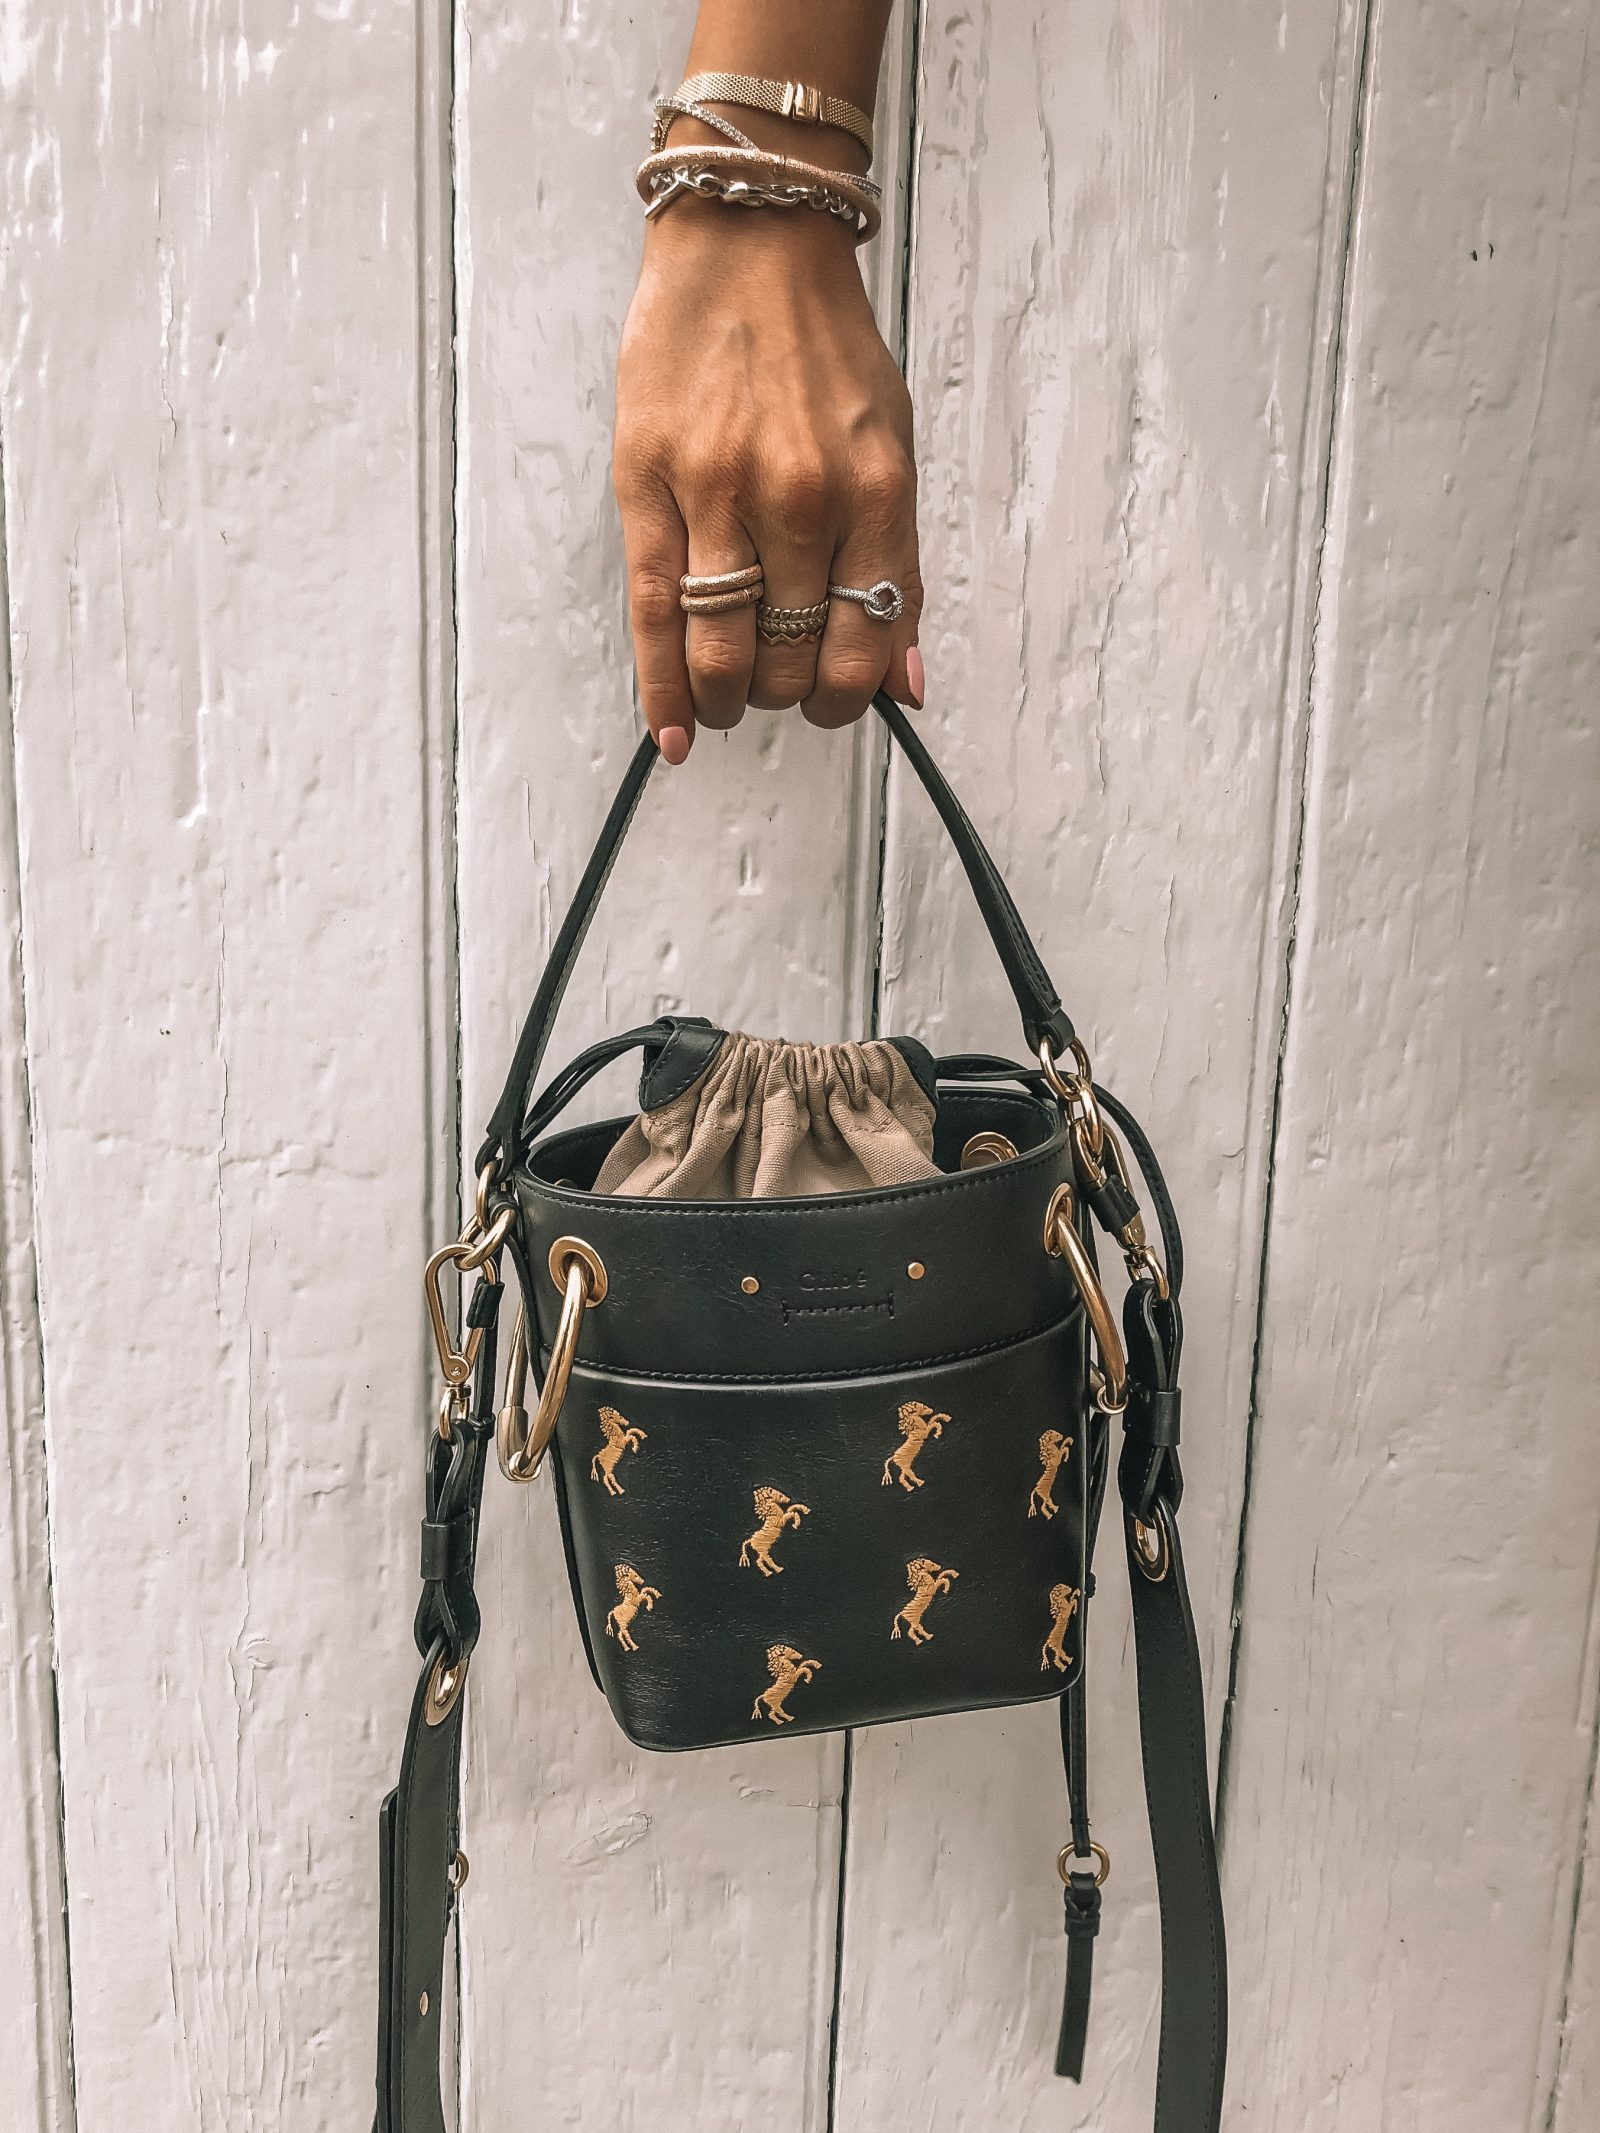 Navy Chloe Roy Mini Bucket Bag with yellow embroidered horses & lots of pandora stacking rings!